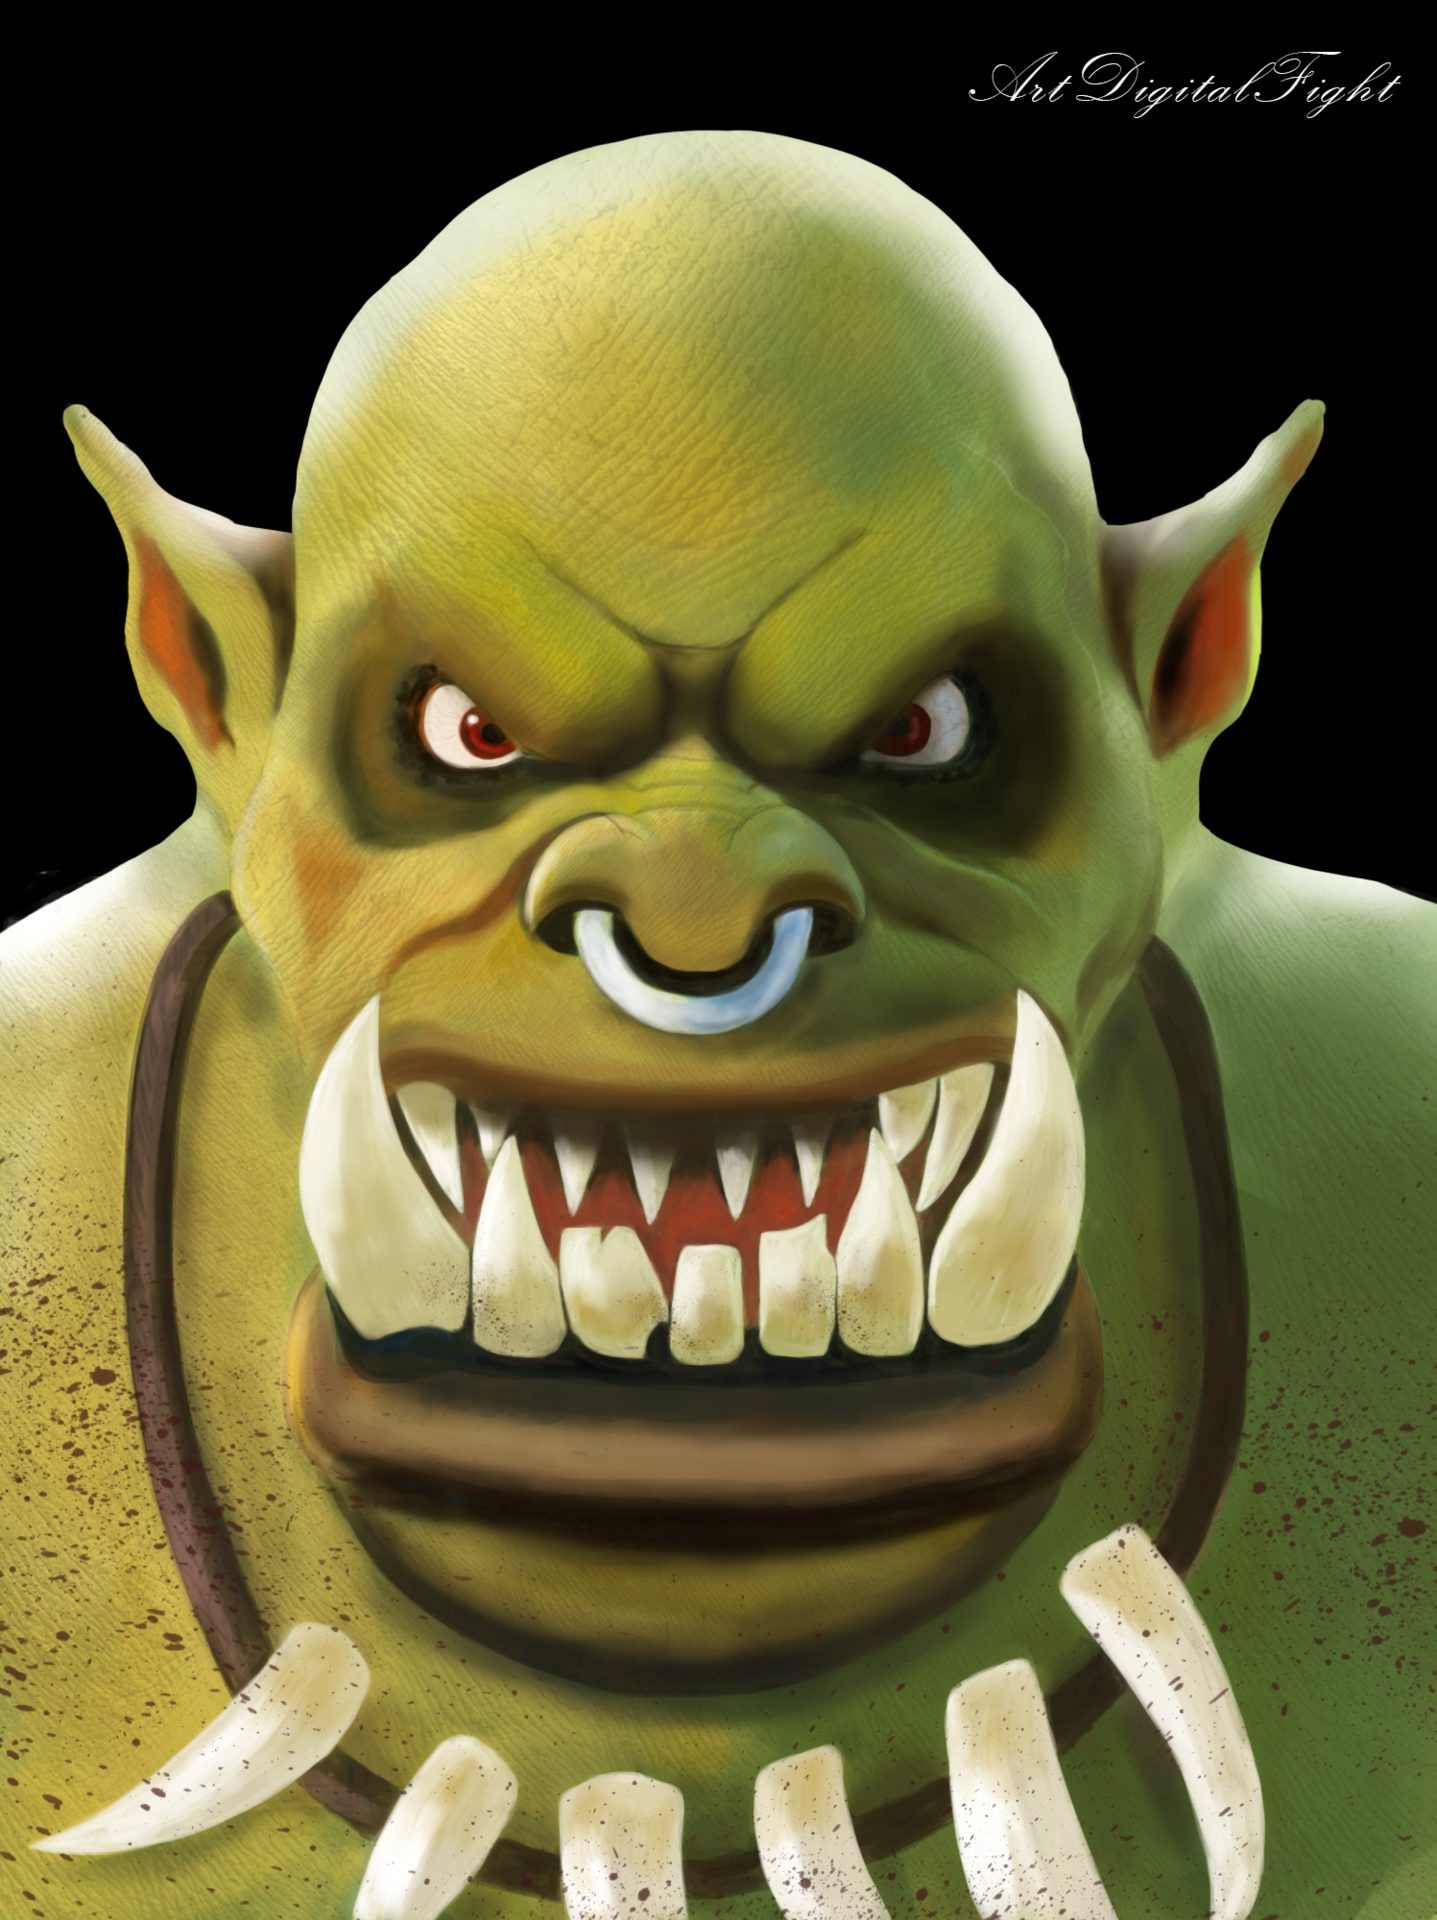 orcs91 par Burning Digital